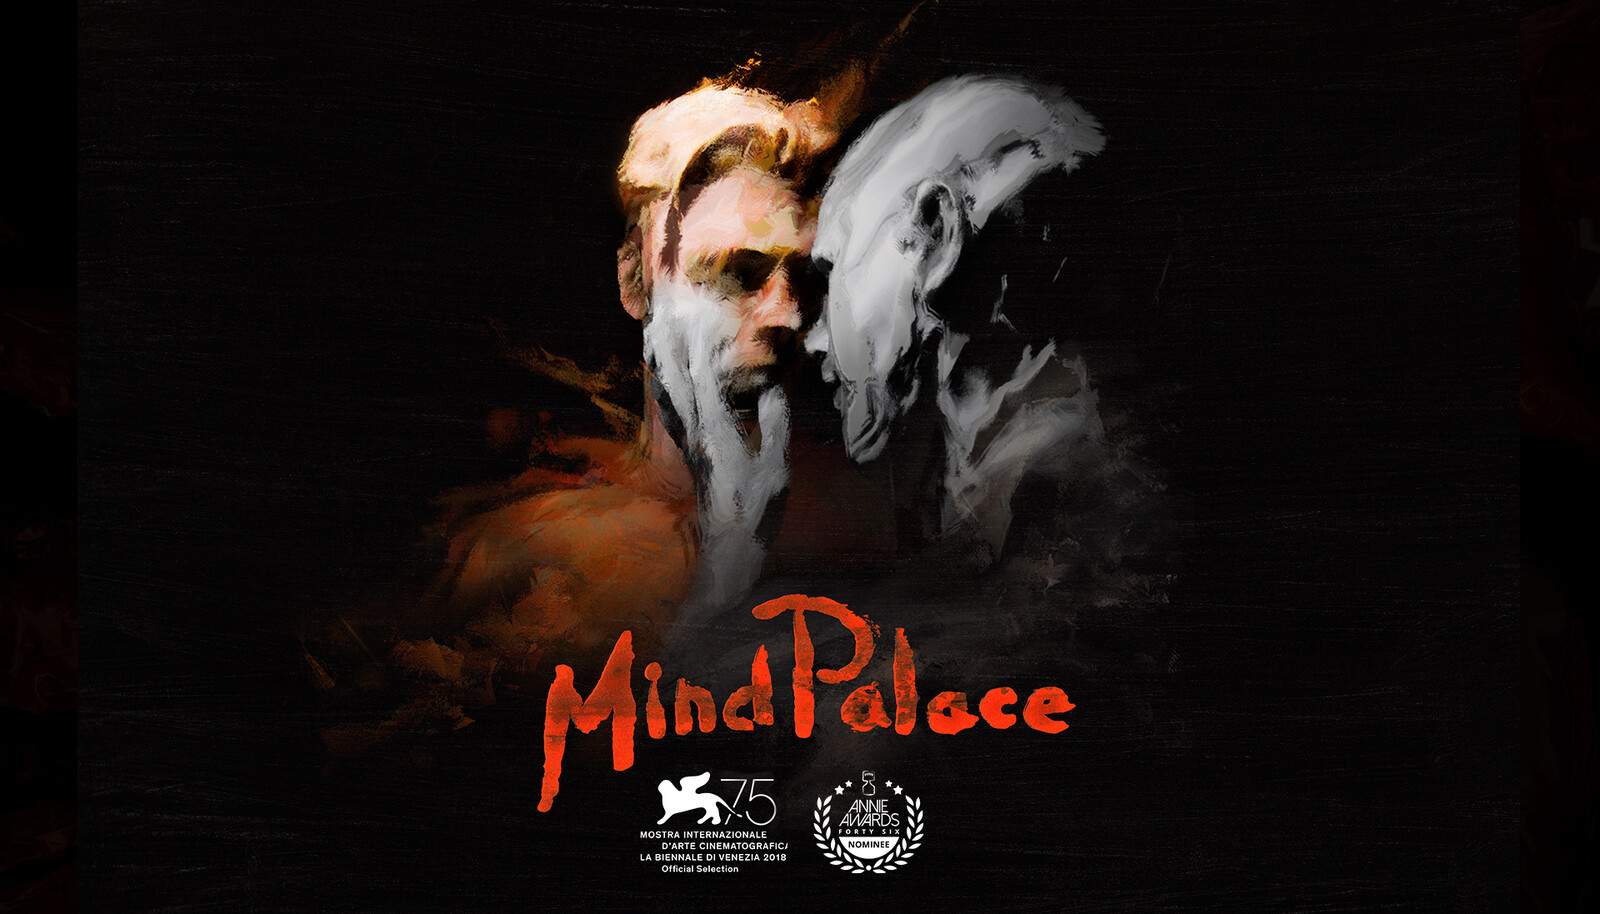 """MindPalace"" VR Experience - Simulation and LookDev"